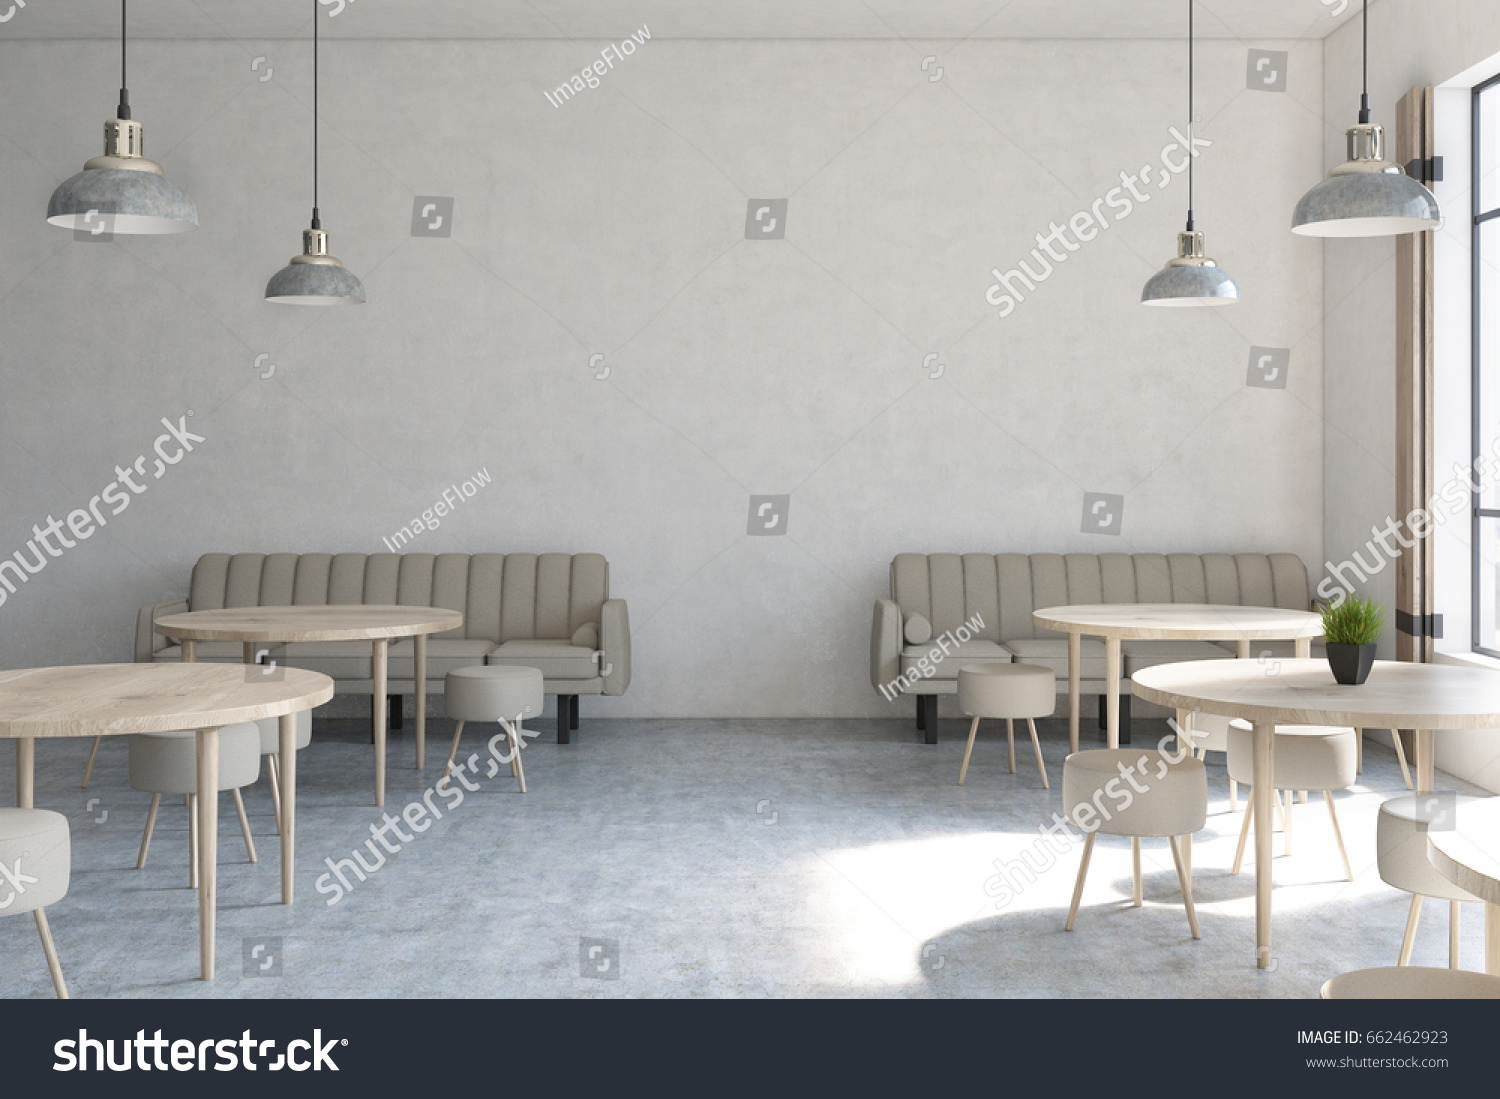 front view of a modern cafe interior with concrete walls wooden floor round tables - Concrete Cafe Interior